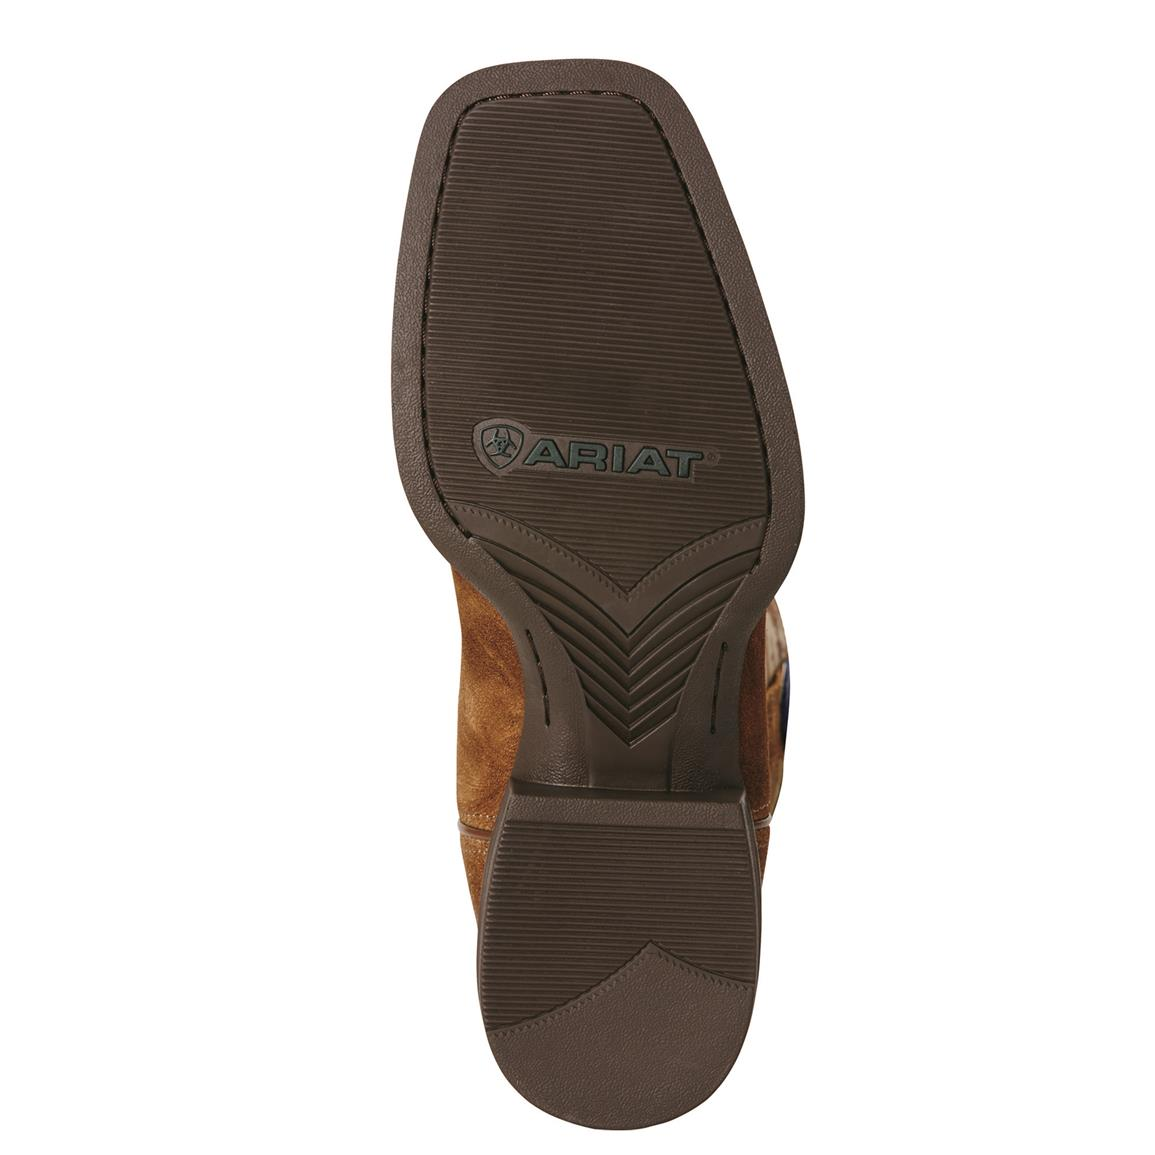 Duratread outsole